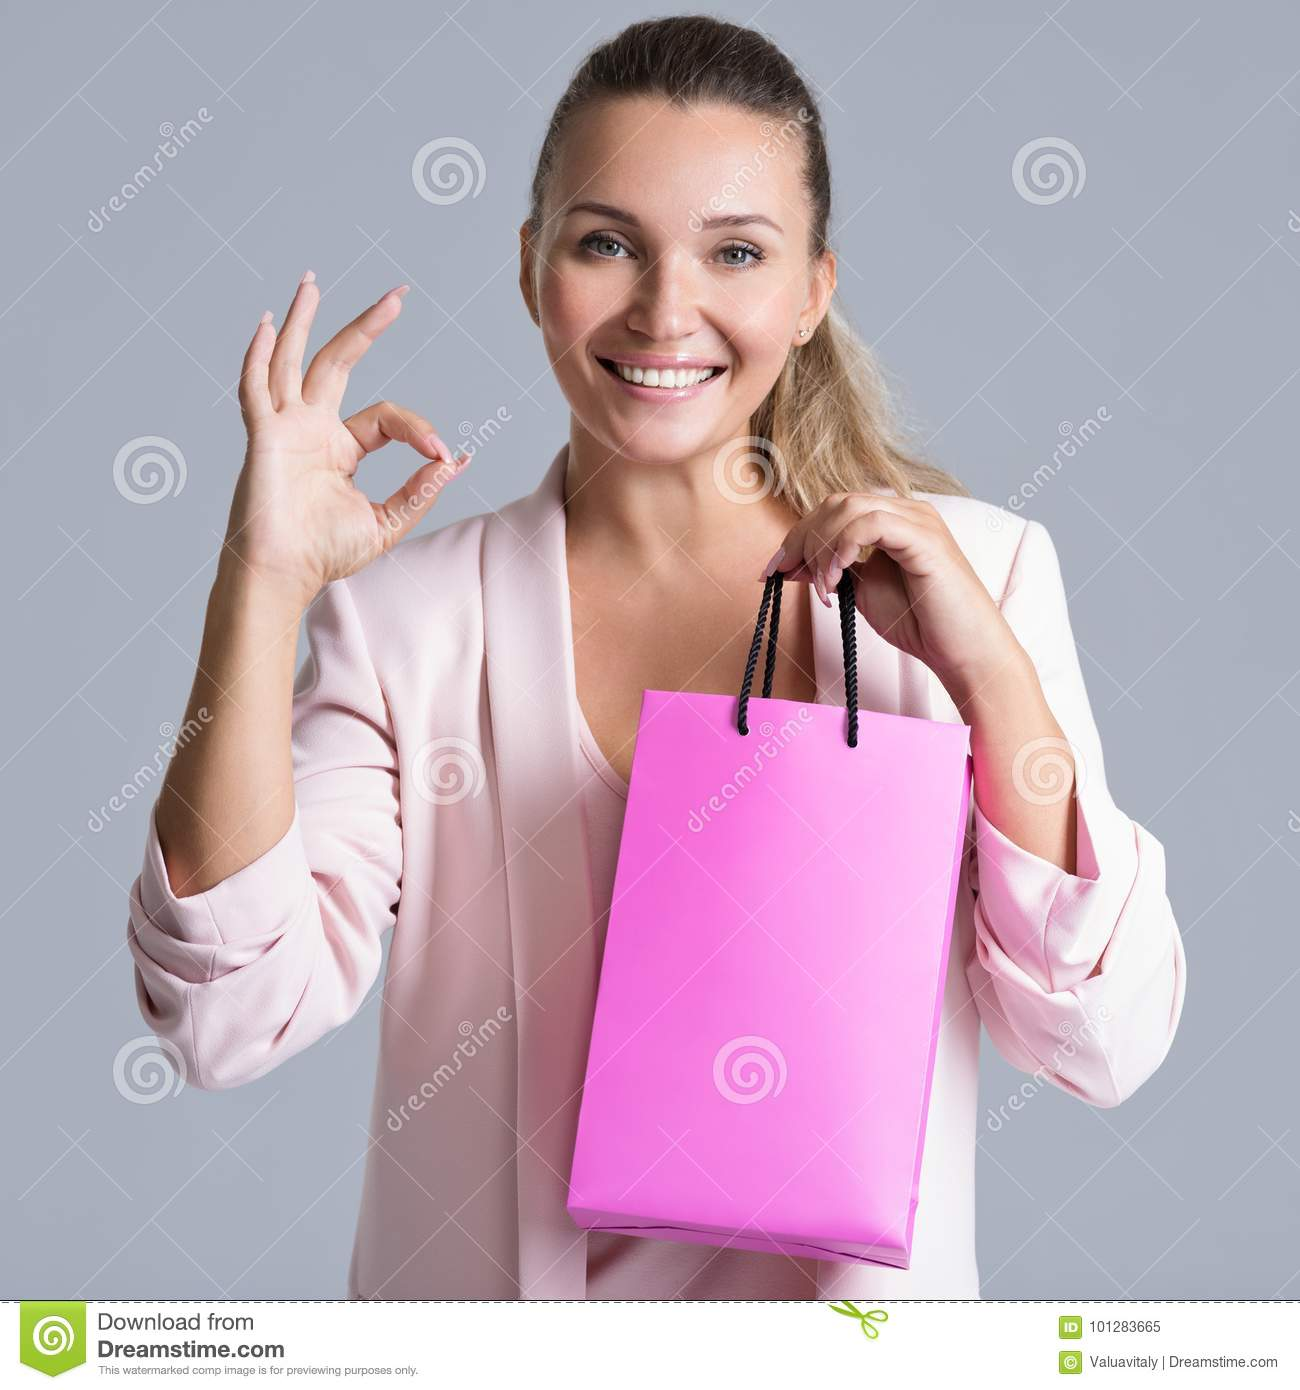 Portrait of a happy smiling woman with pink shopping bag.